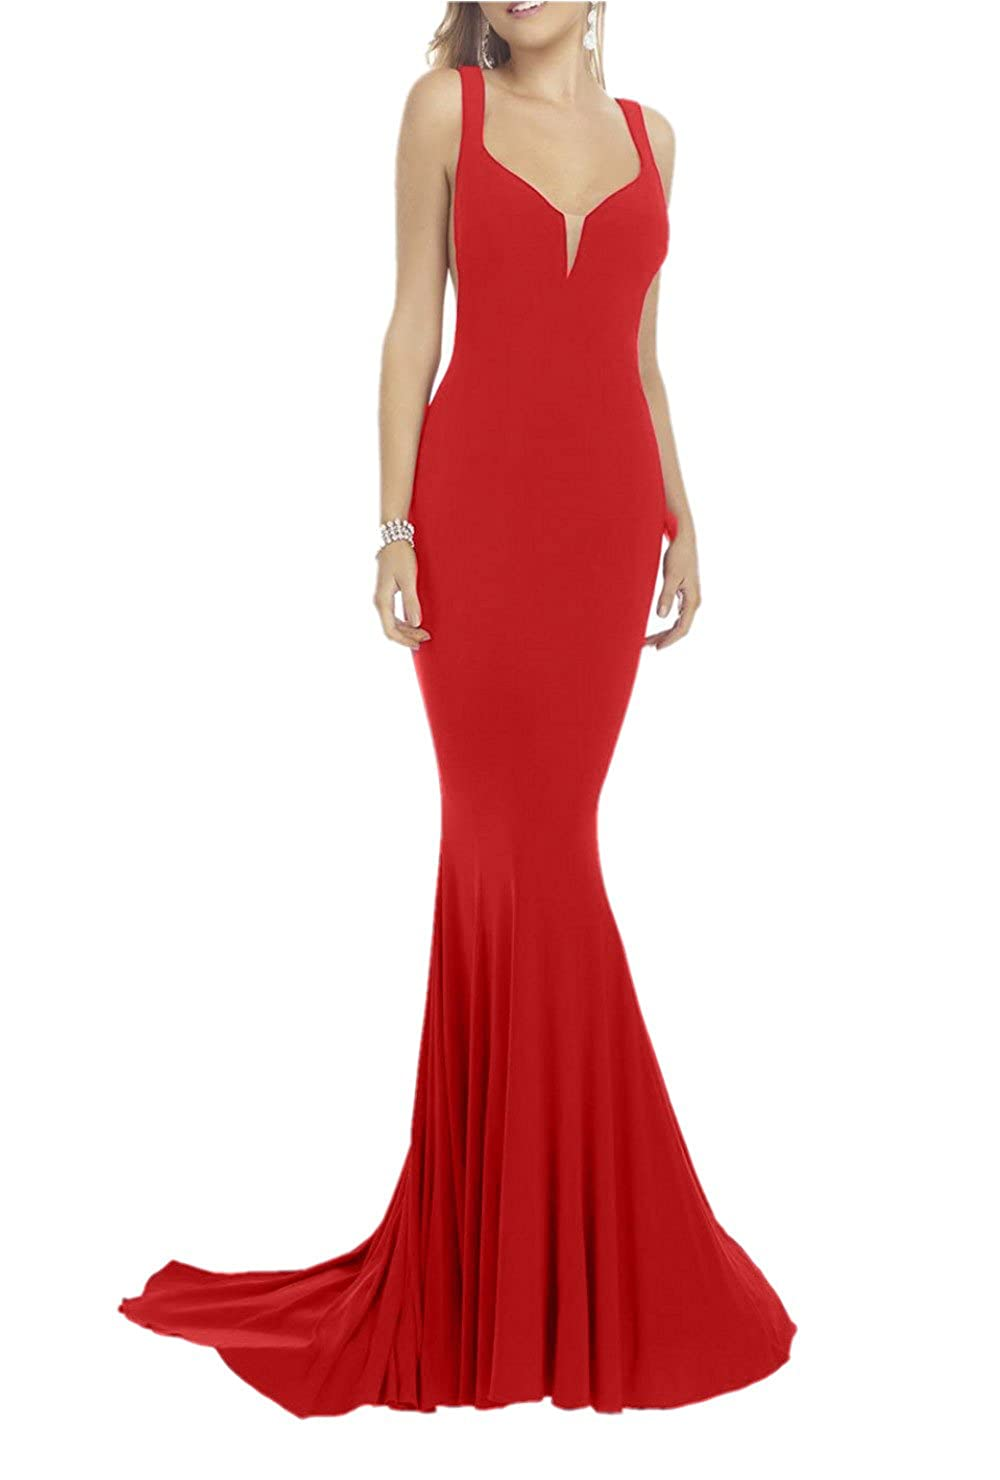 Promworld Womens V-neckline Formal Evening Gowns Low Back Mermaid Prom Dress: Amazon.co.uk: Clothing